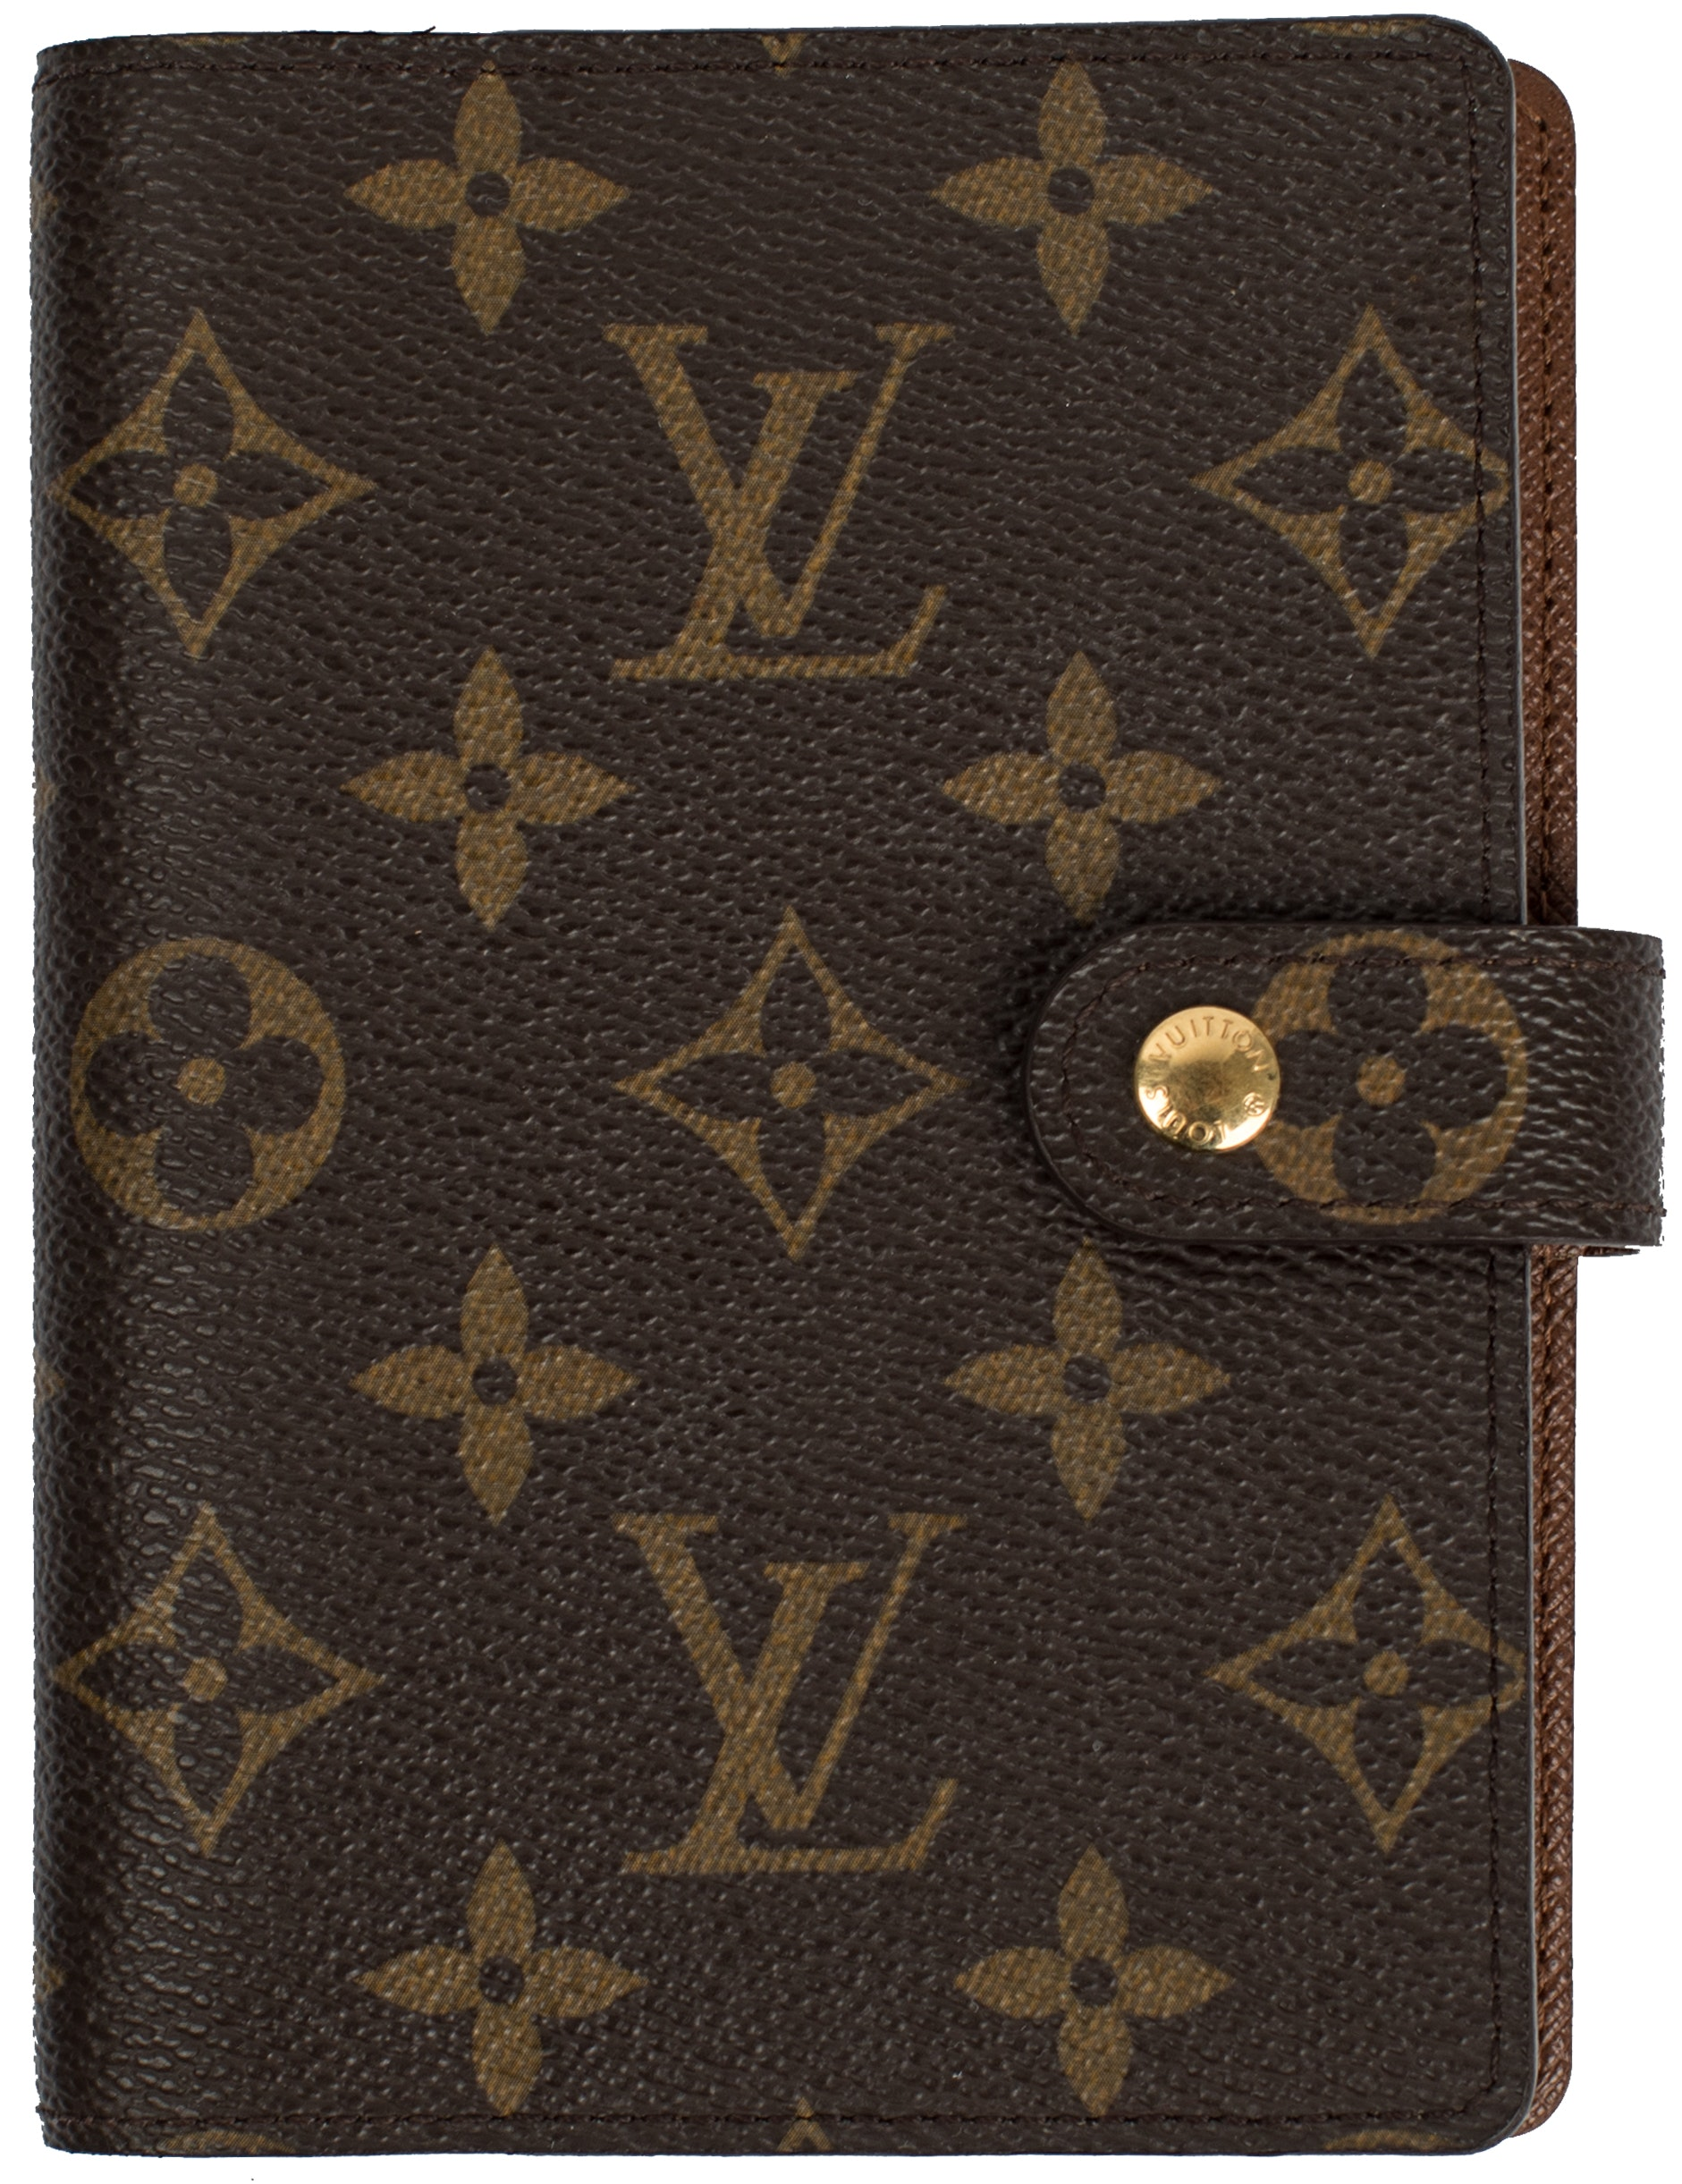 Louis Vuitton Agenda Cover Small Ring Monogram Brown